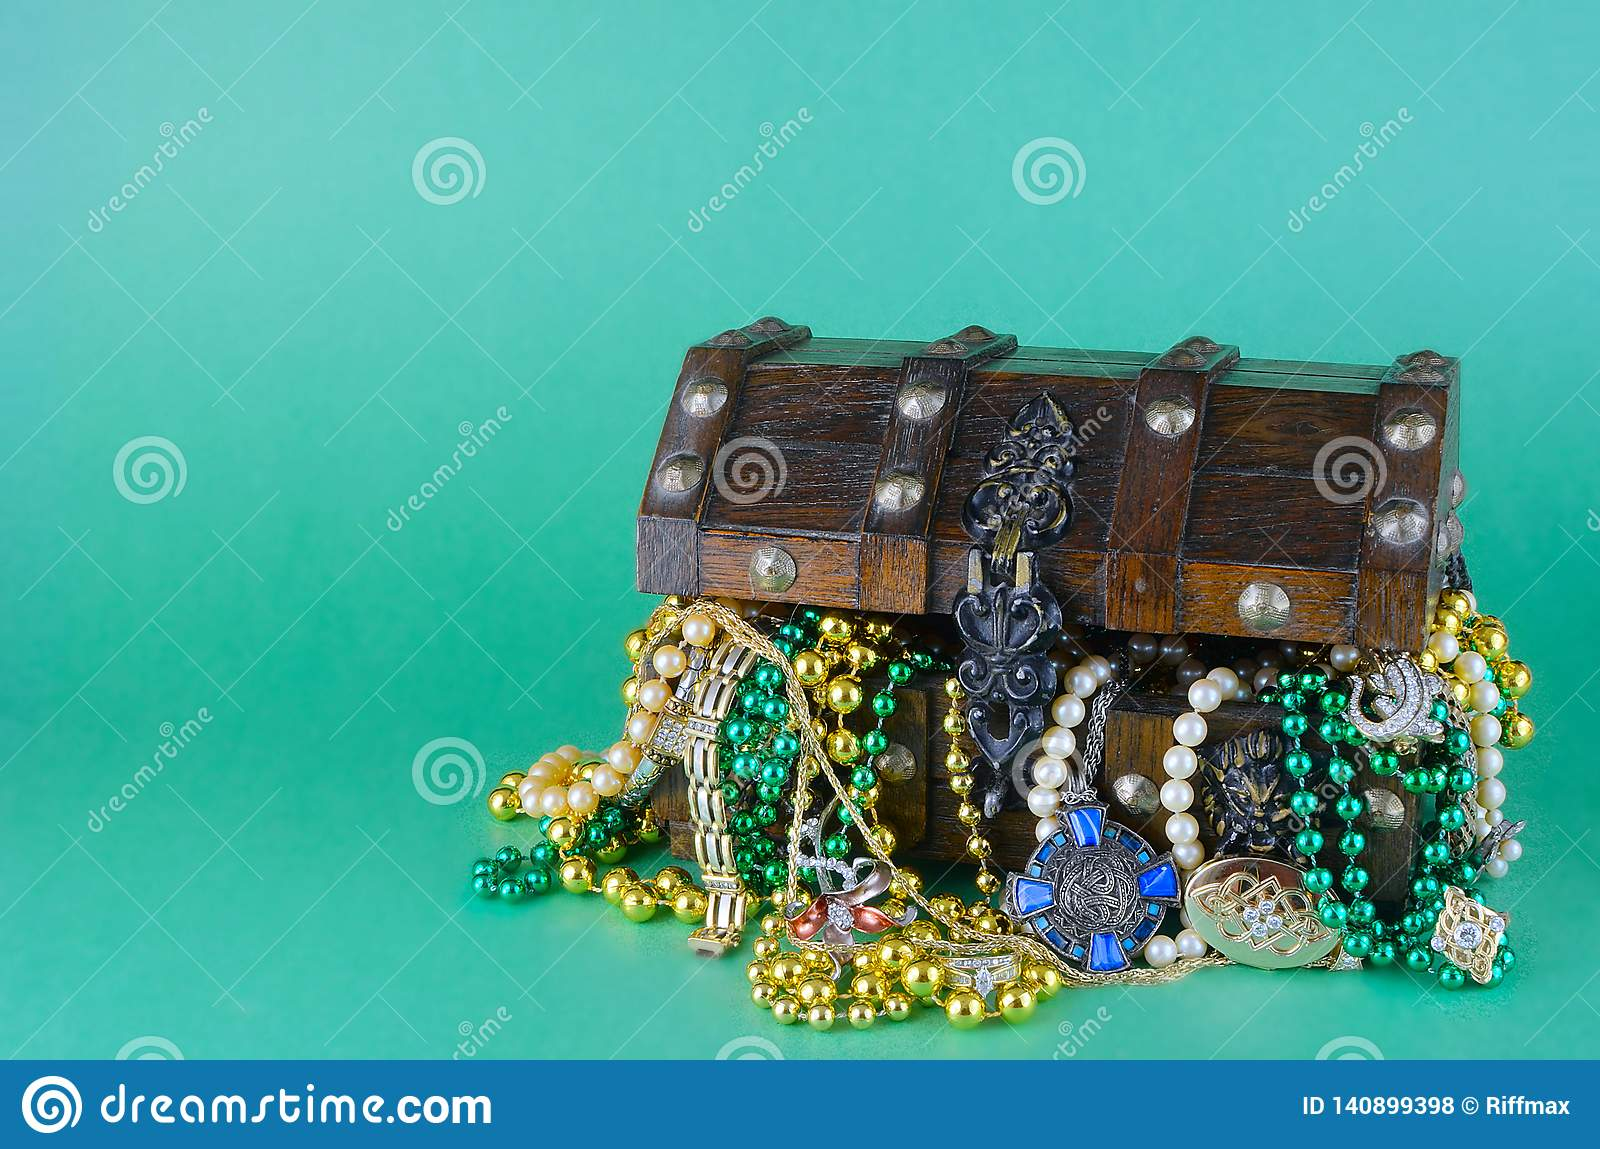 Image for Saint Patrick`s Day on March 17th. Treasure chest to symbolize luck and wealth is filled with costume jewelry and beads.